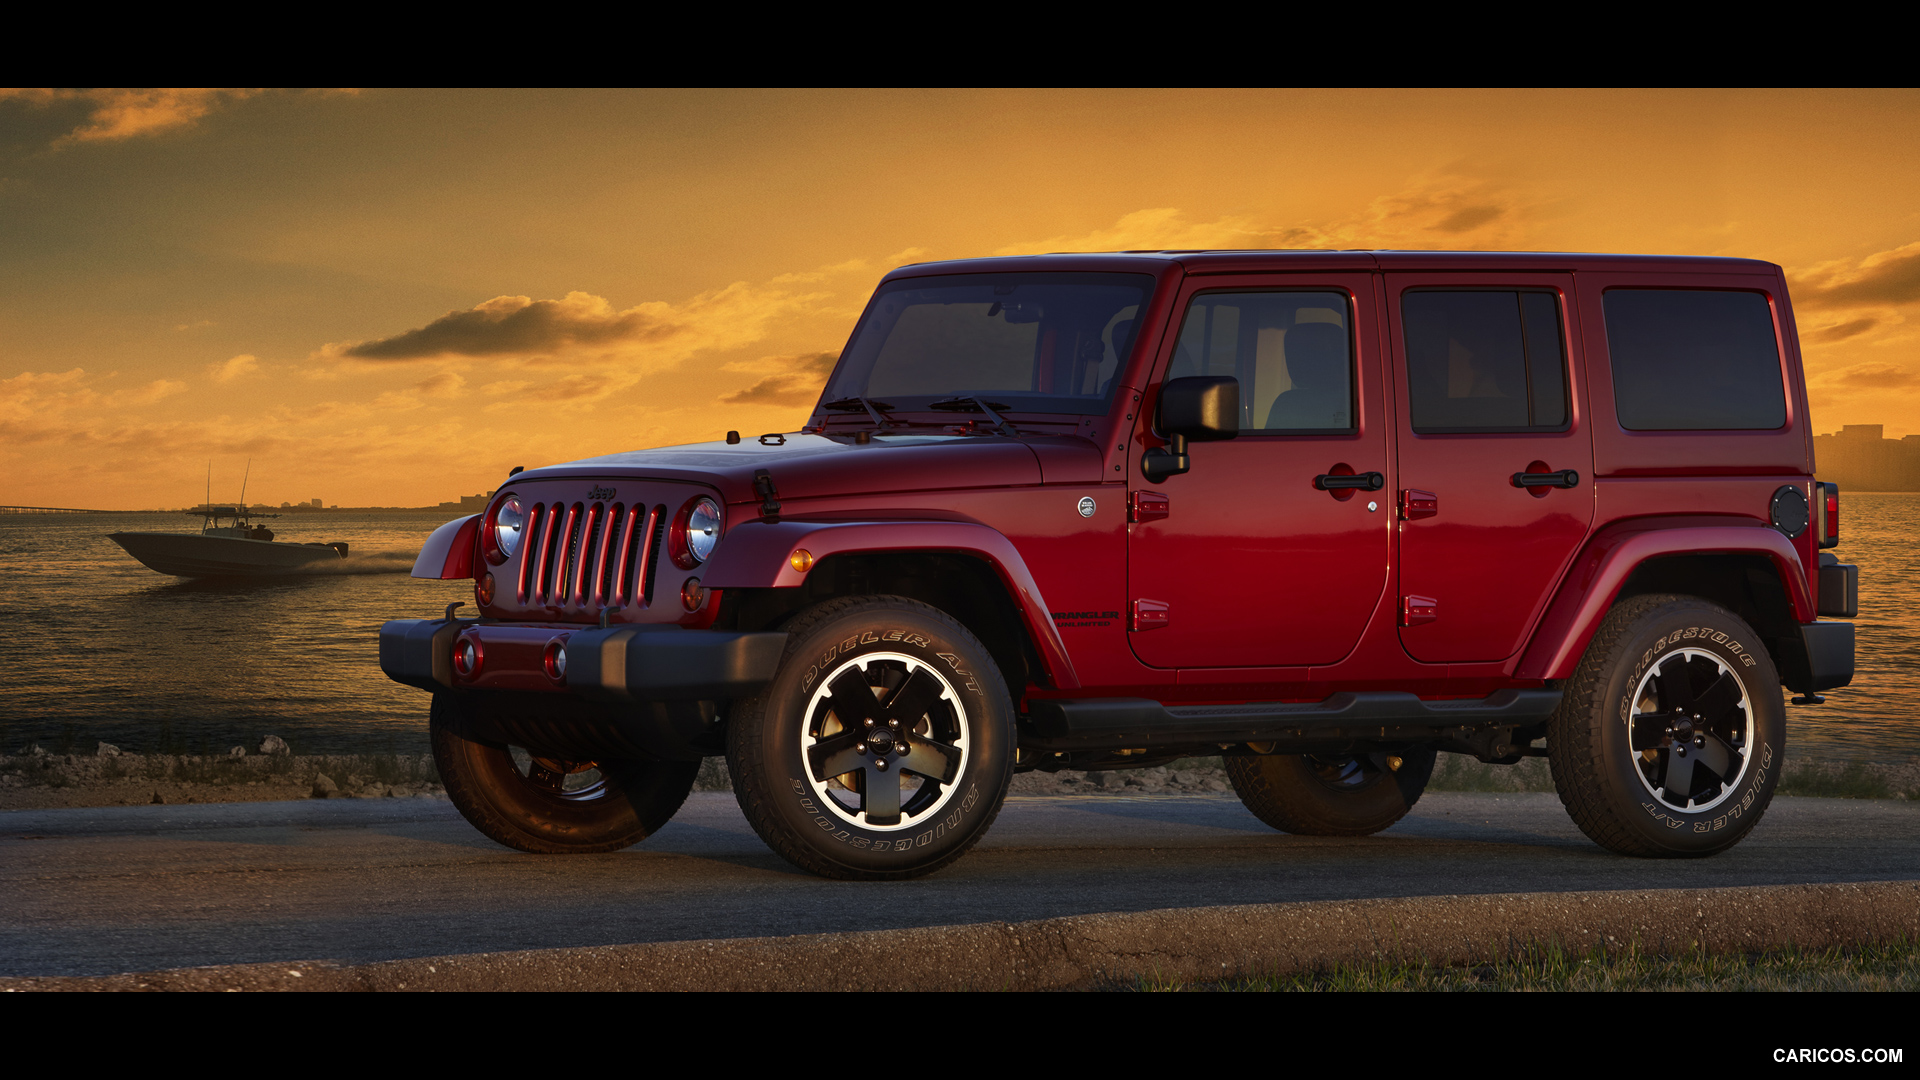 2013 Jeep Wrangler Unlimited Moab   Automotive Picture HD Wallpaper